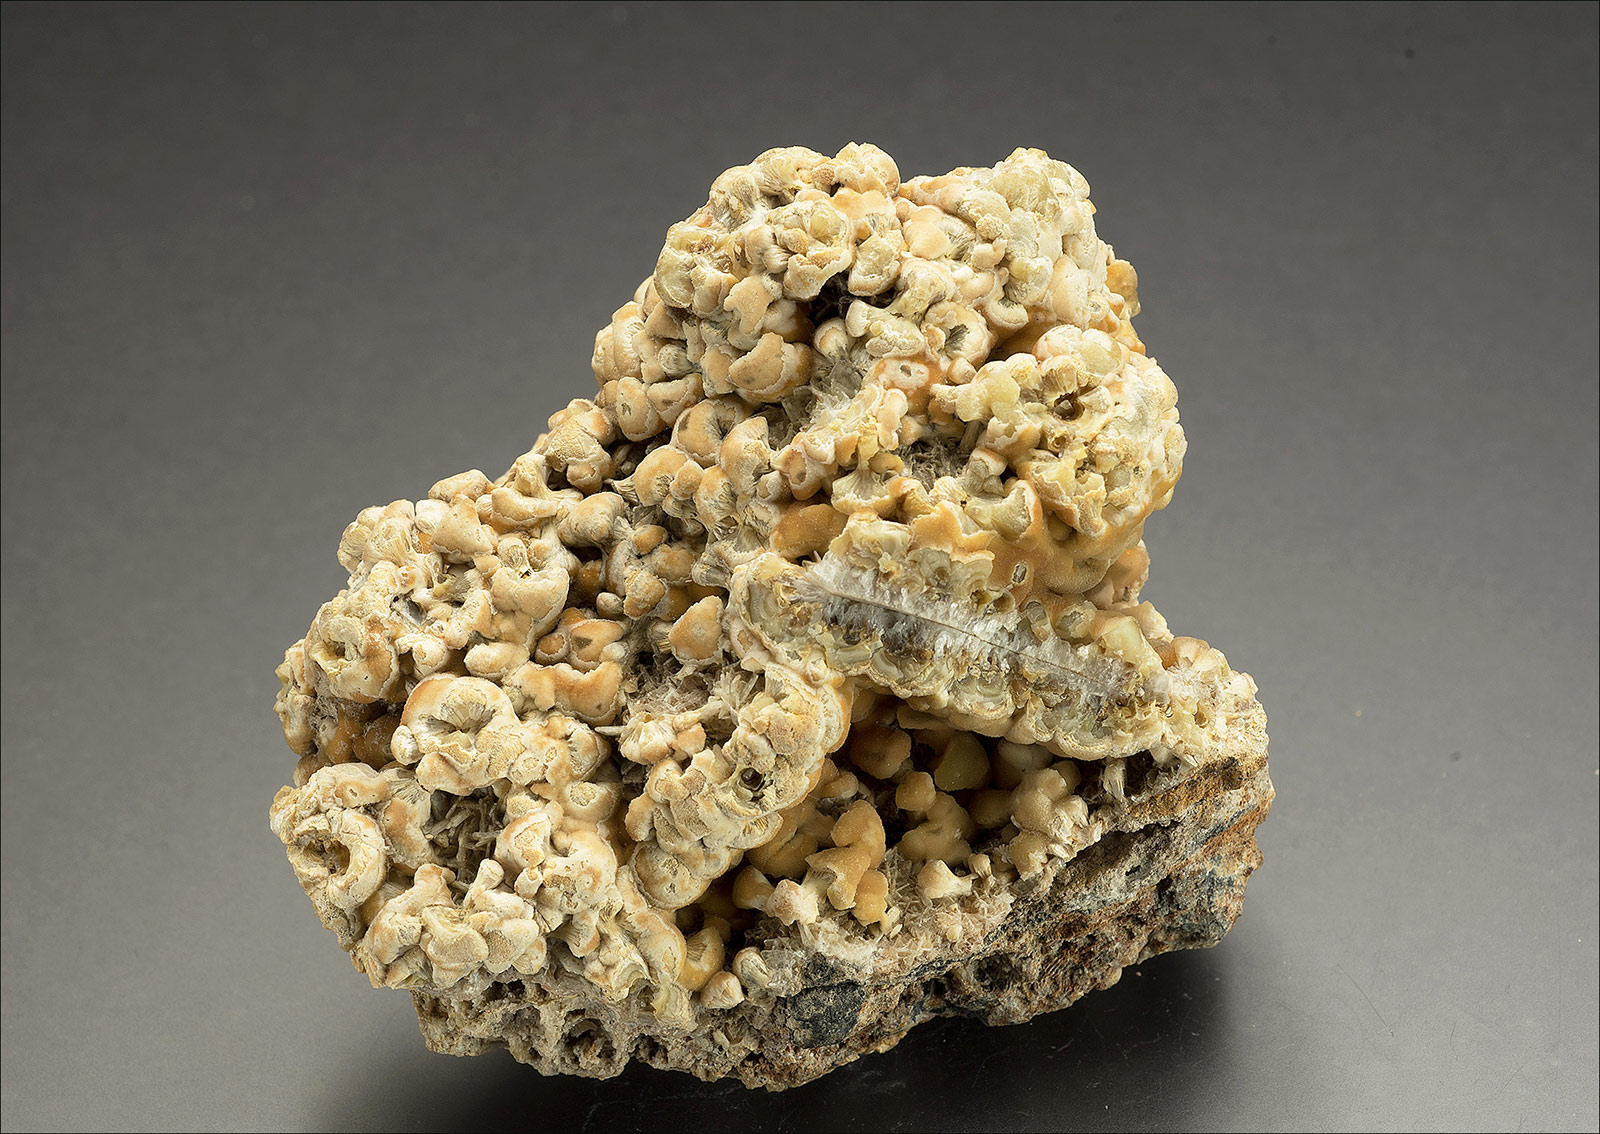 Smithsonite, Buckden Gavel mine, Wharfedale.  70x70x45mm